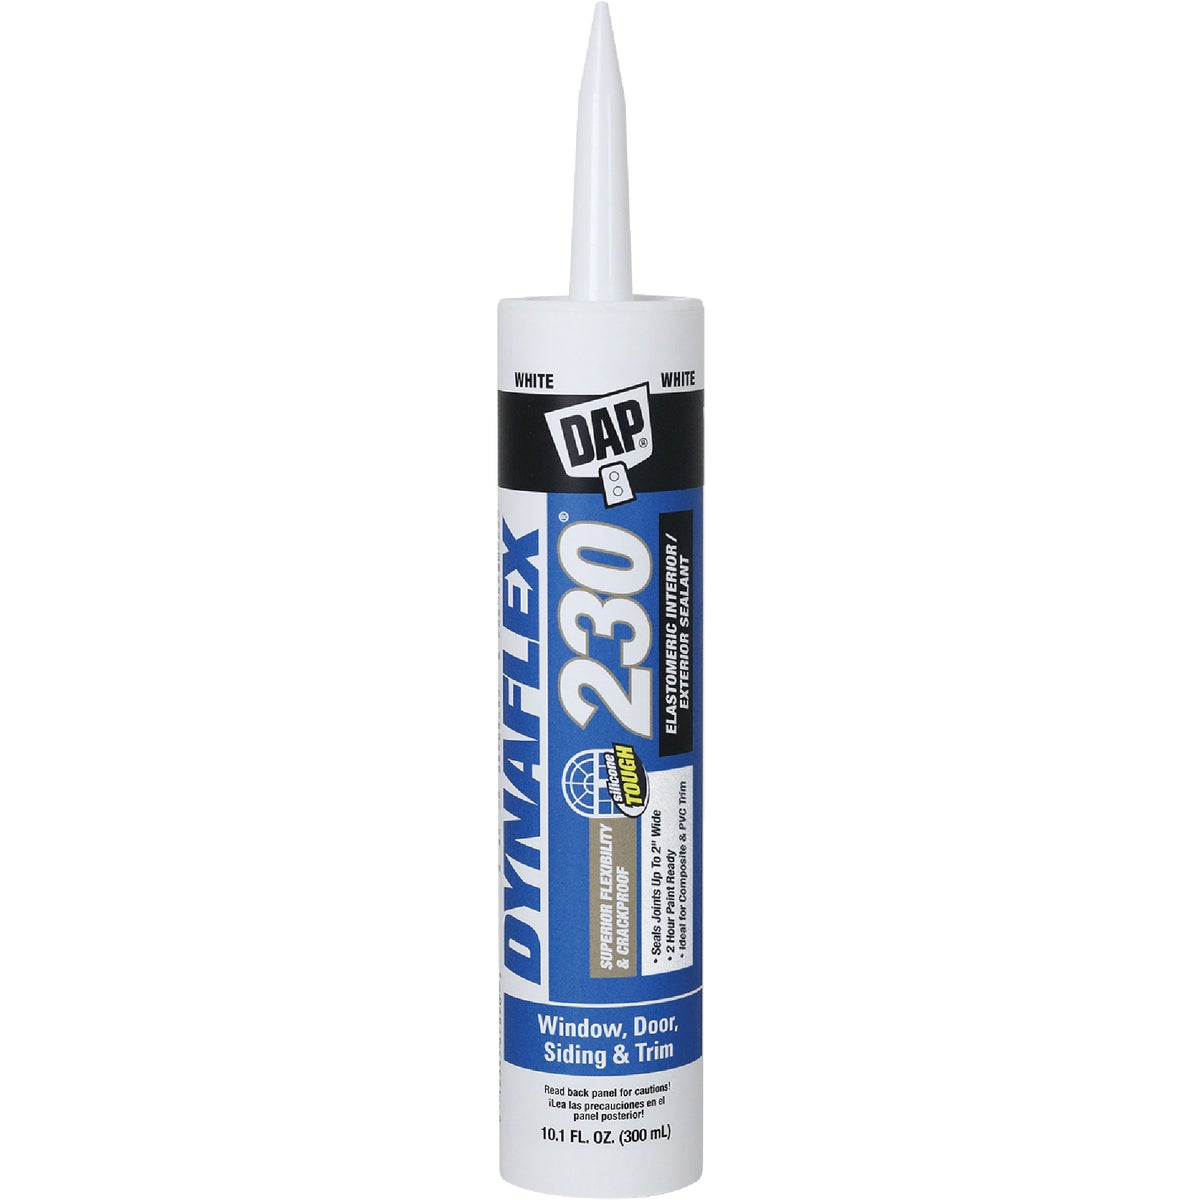 WHT DYNAFLEX LTX SEALANT - 18275 by Dap Inc